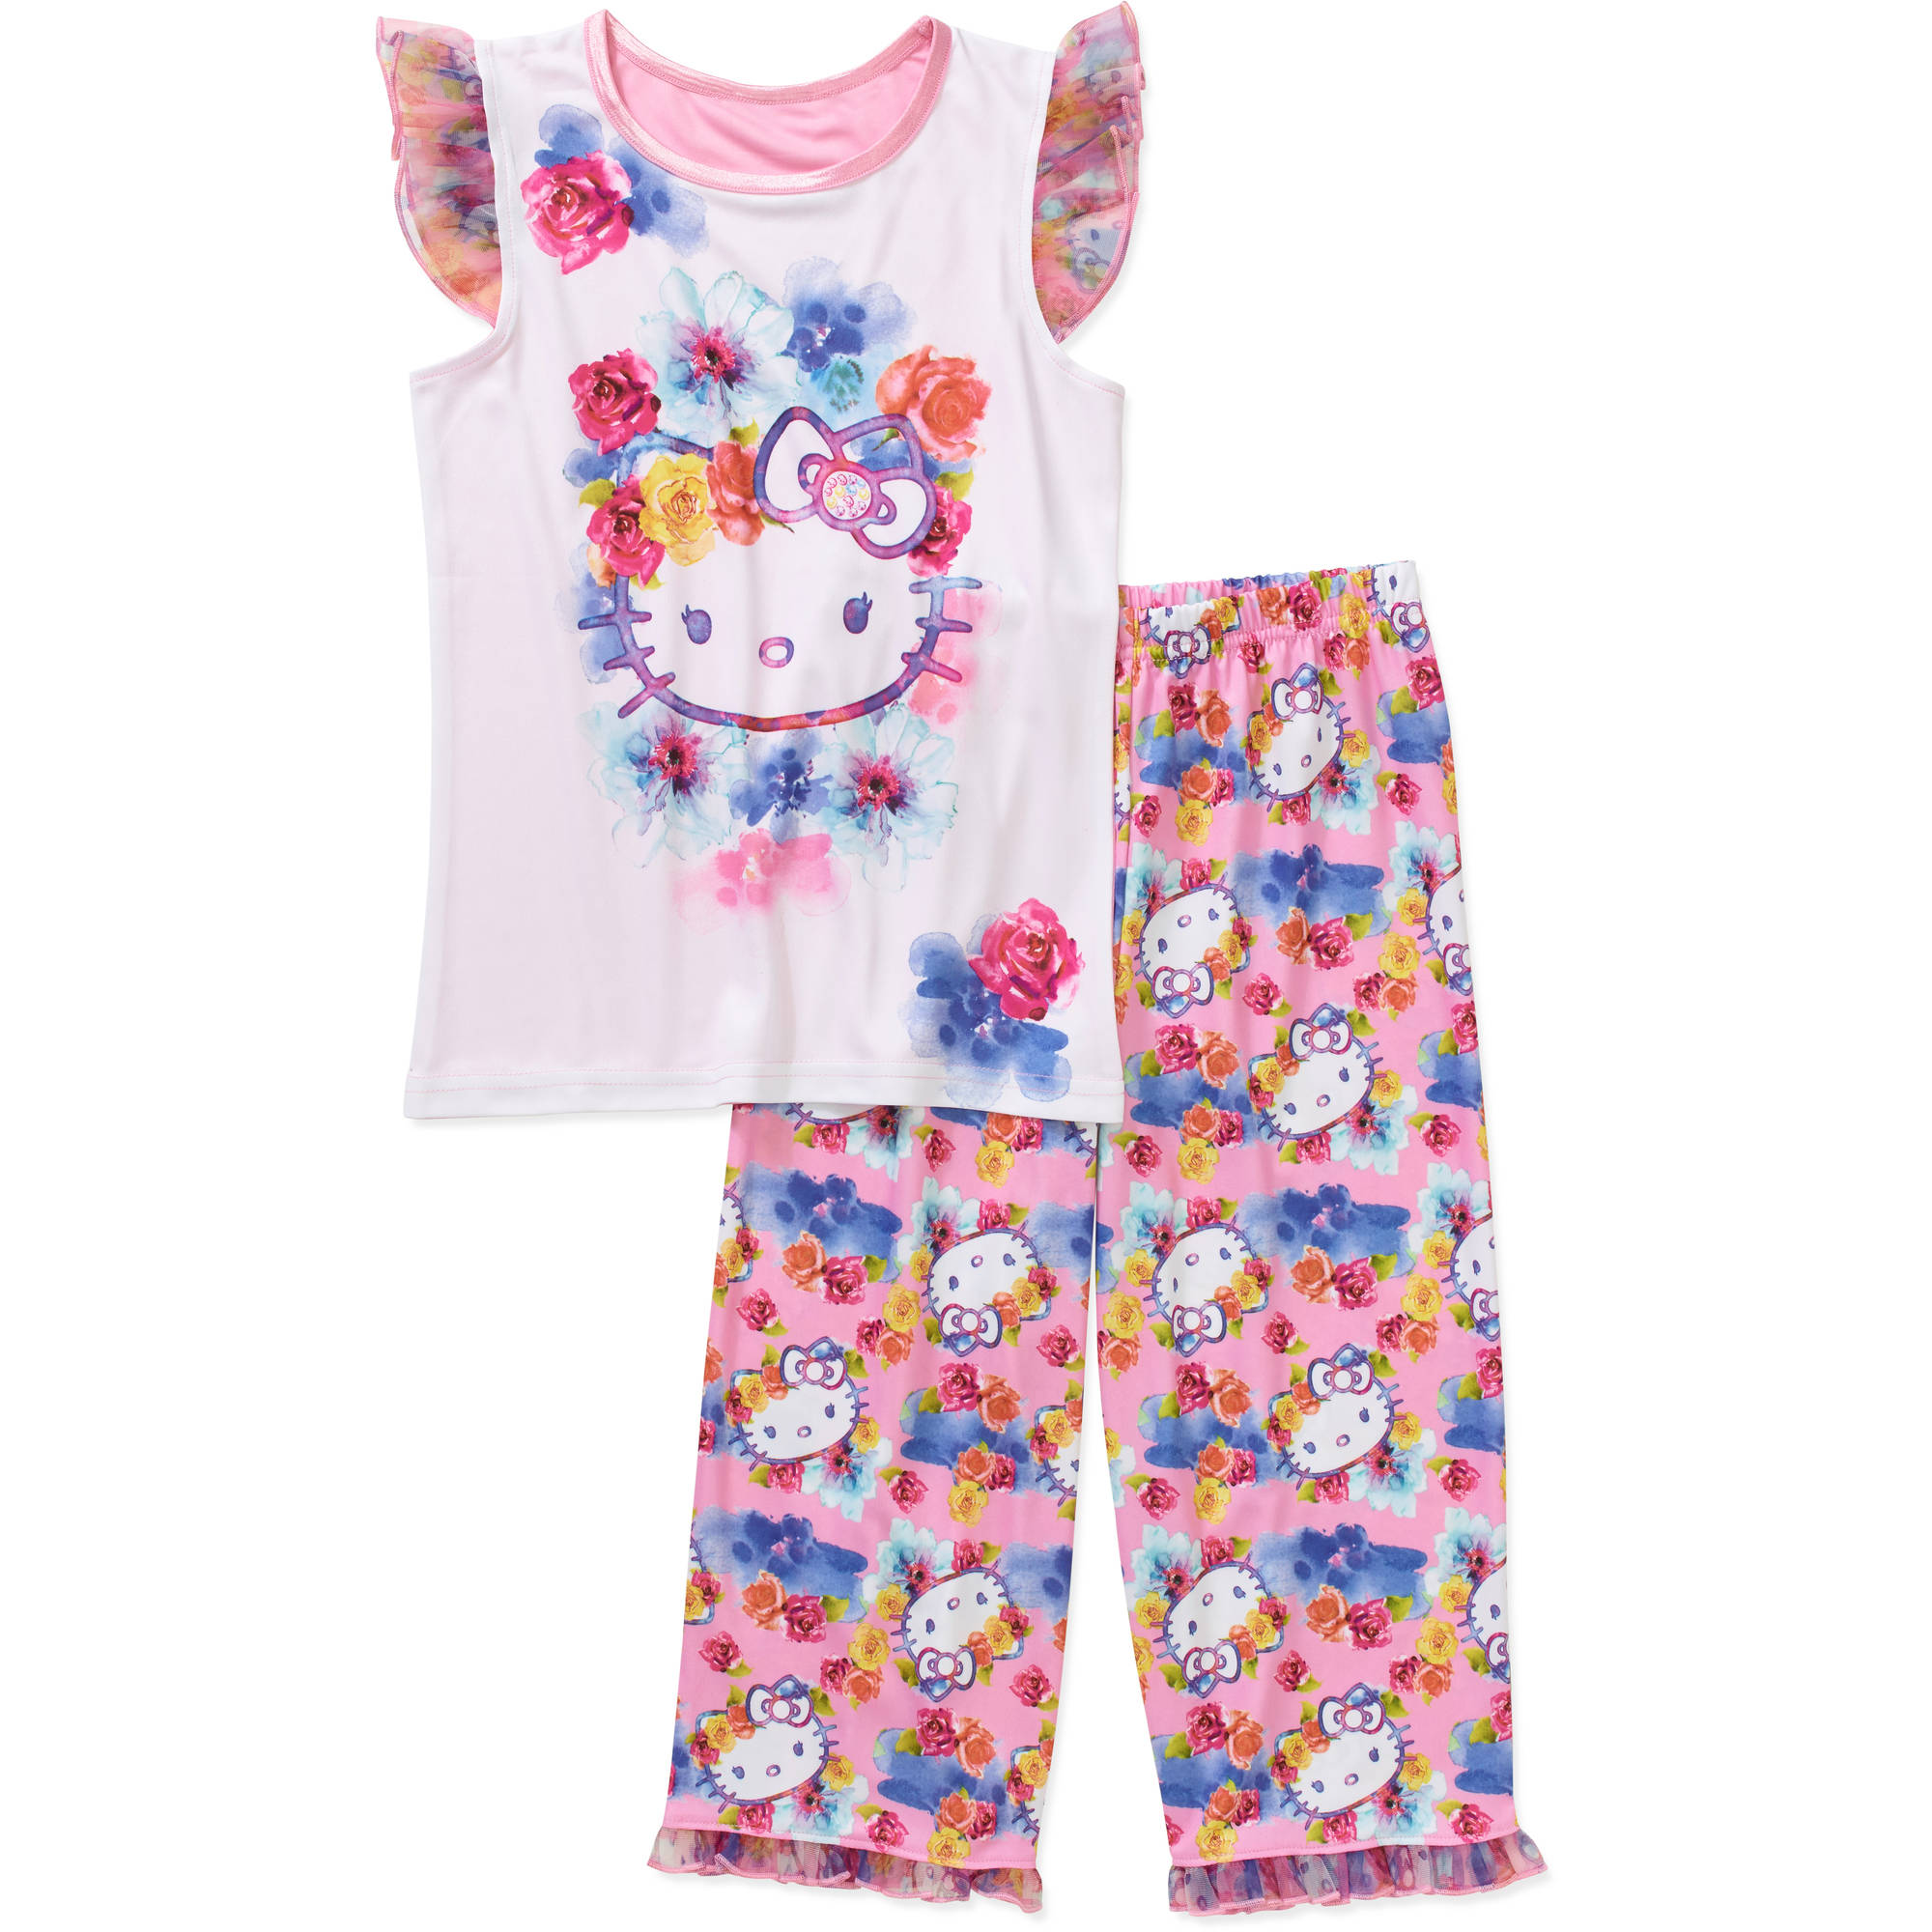 Girls' License Short Sleeve Pajama Top & Sleep Pant Set